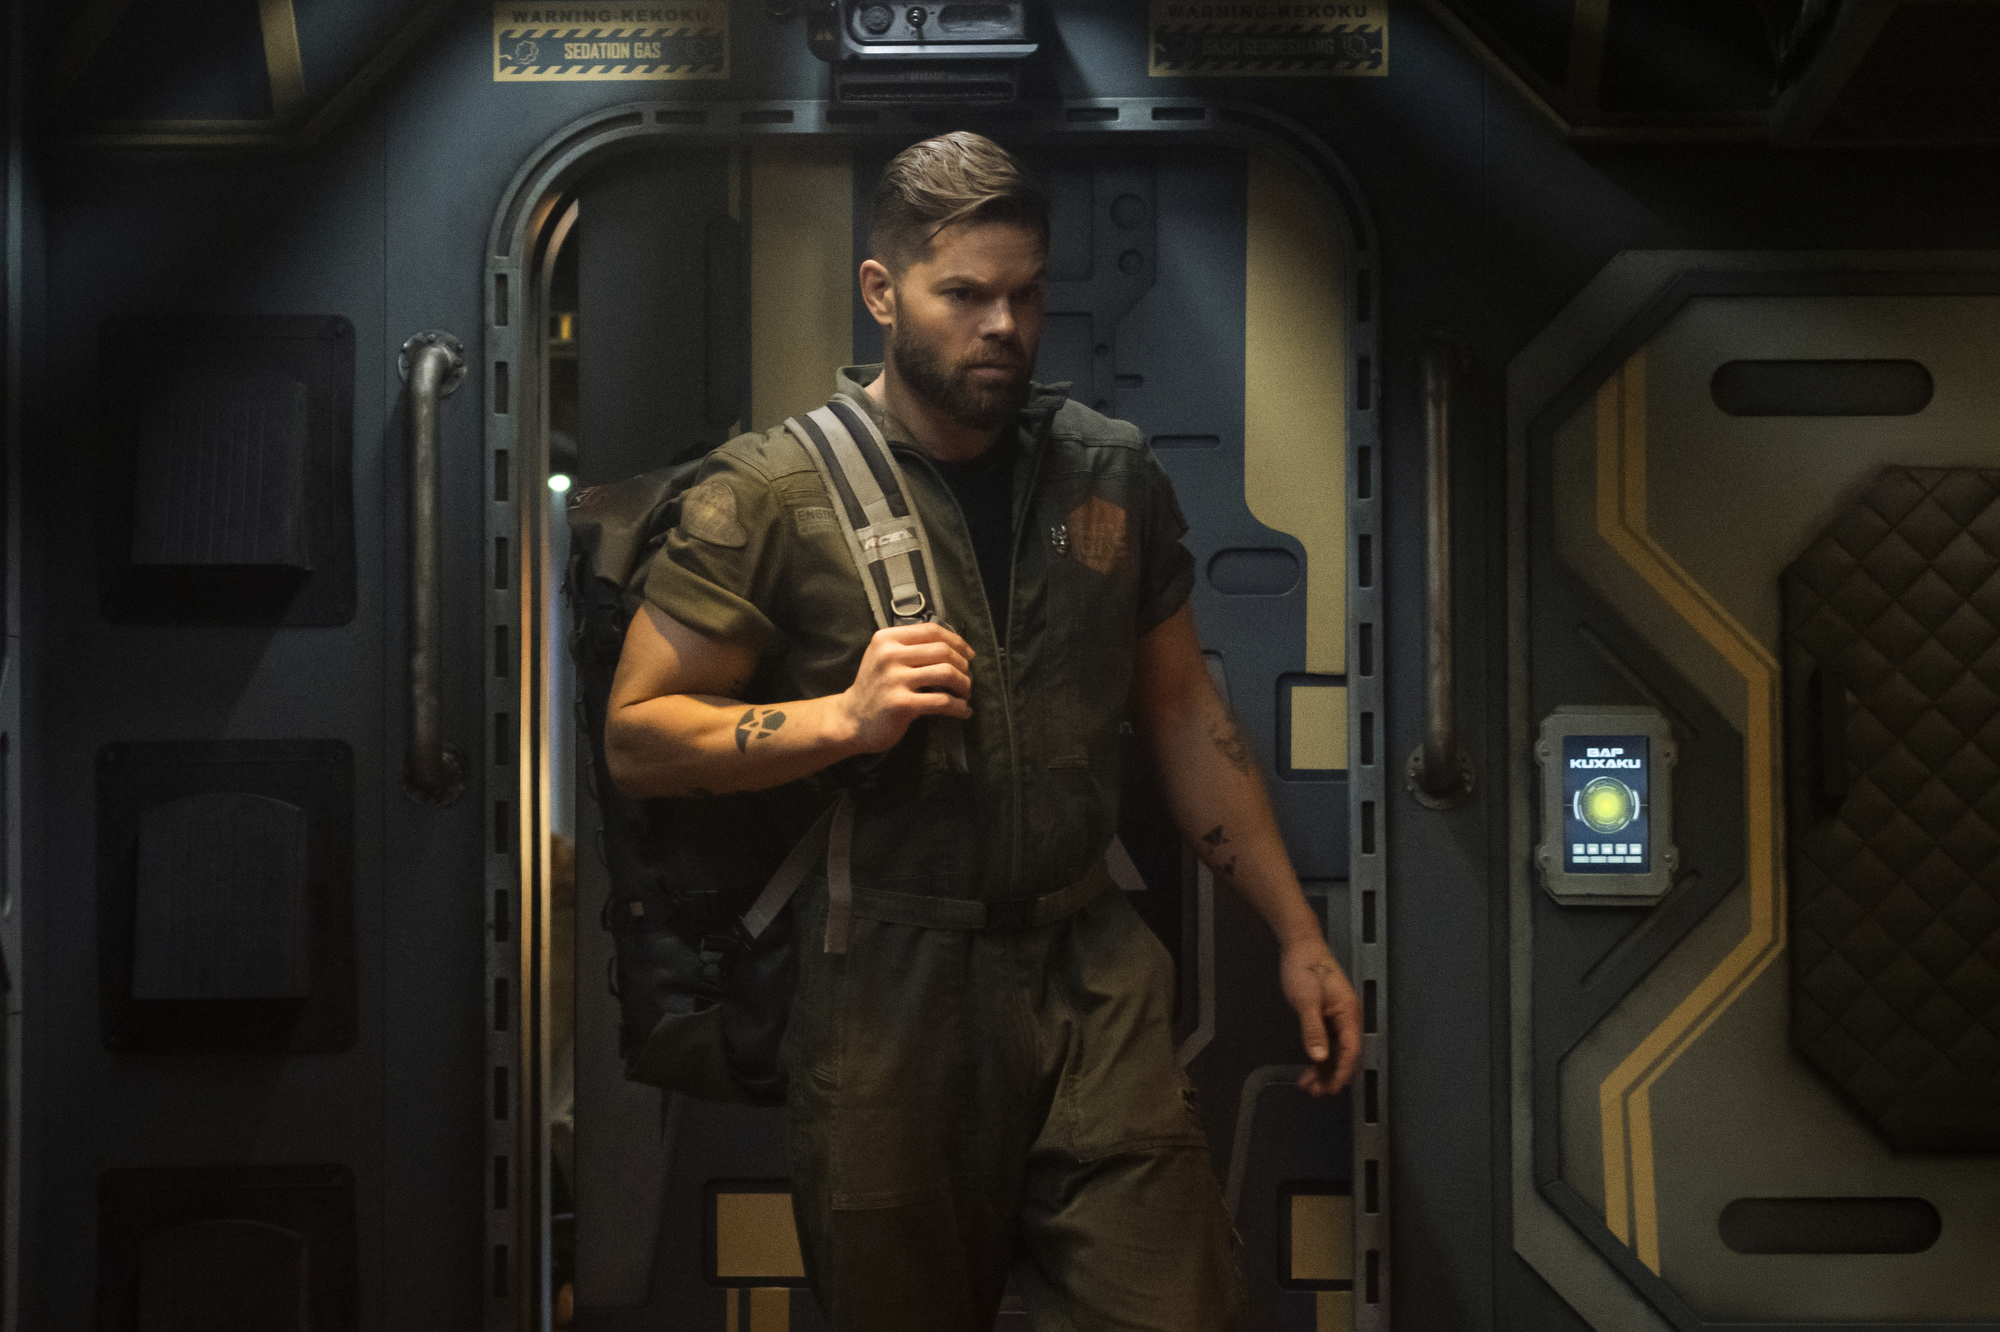 The Expanse Season 5 Amos